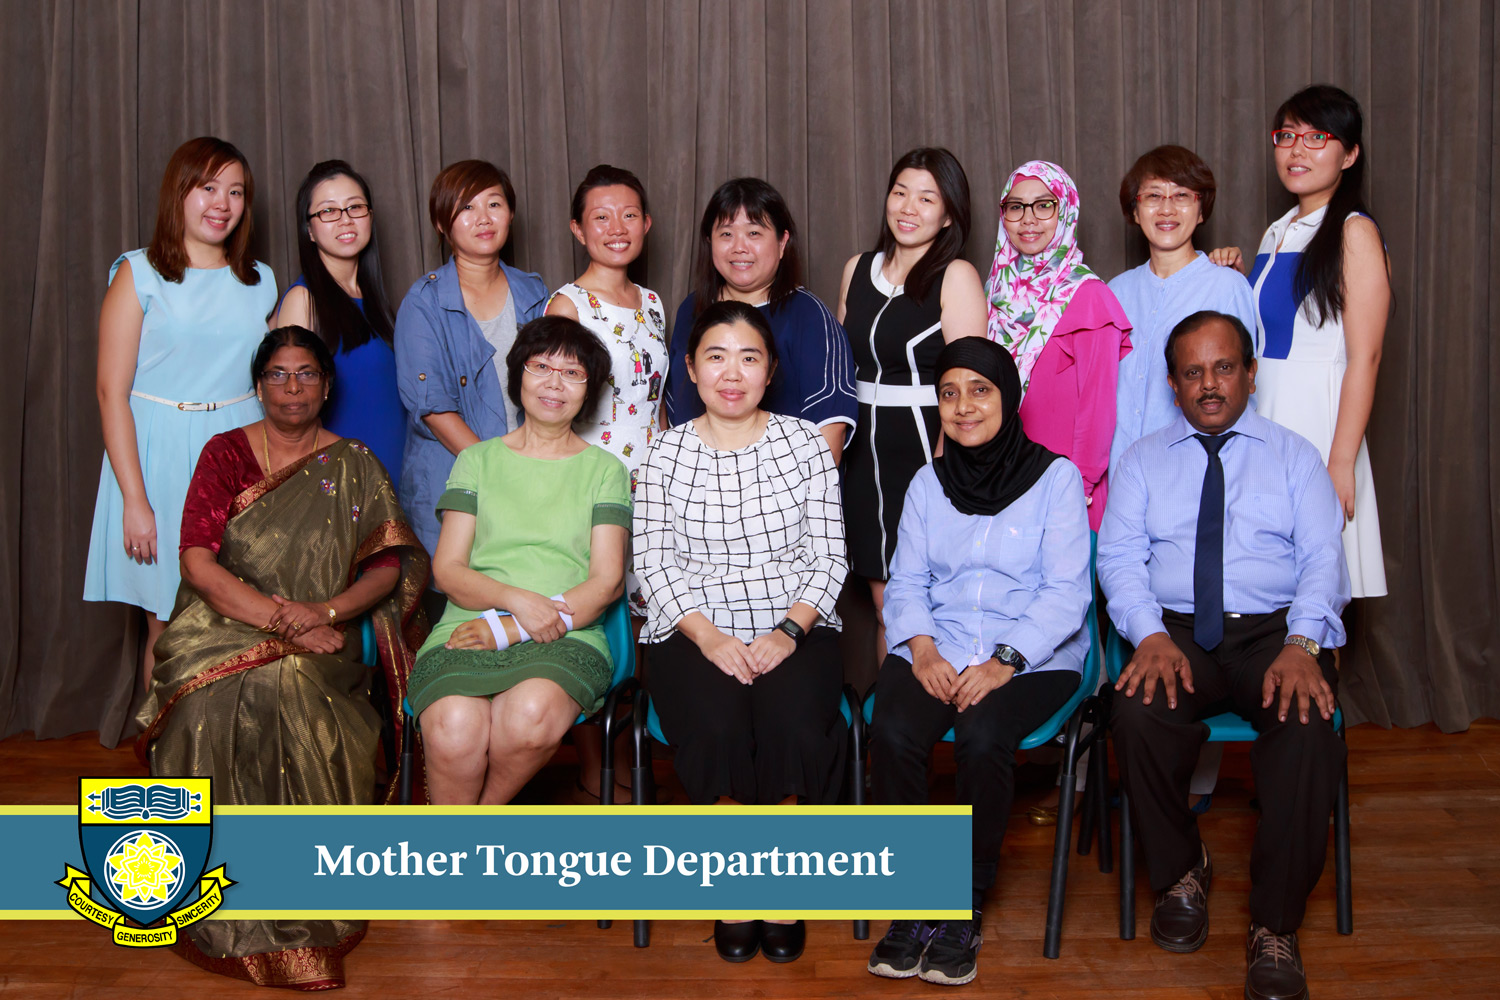 Mother Tongue Department